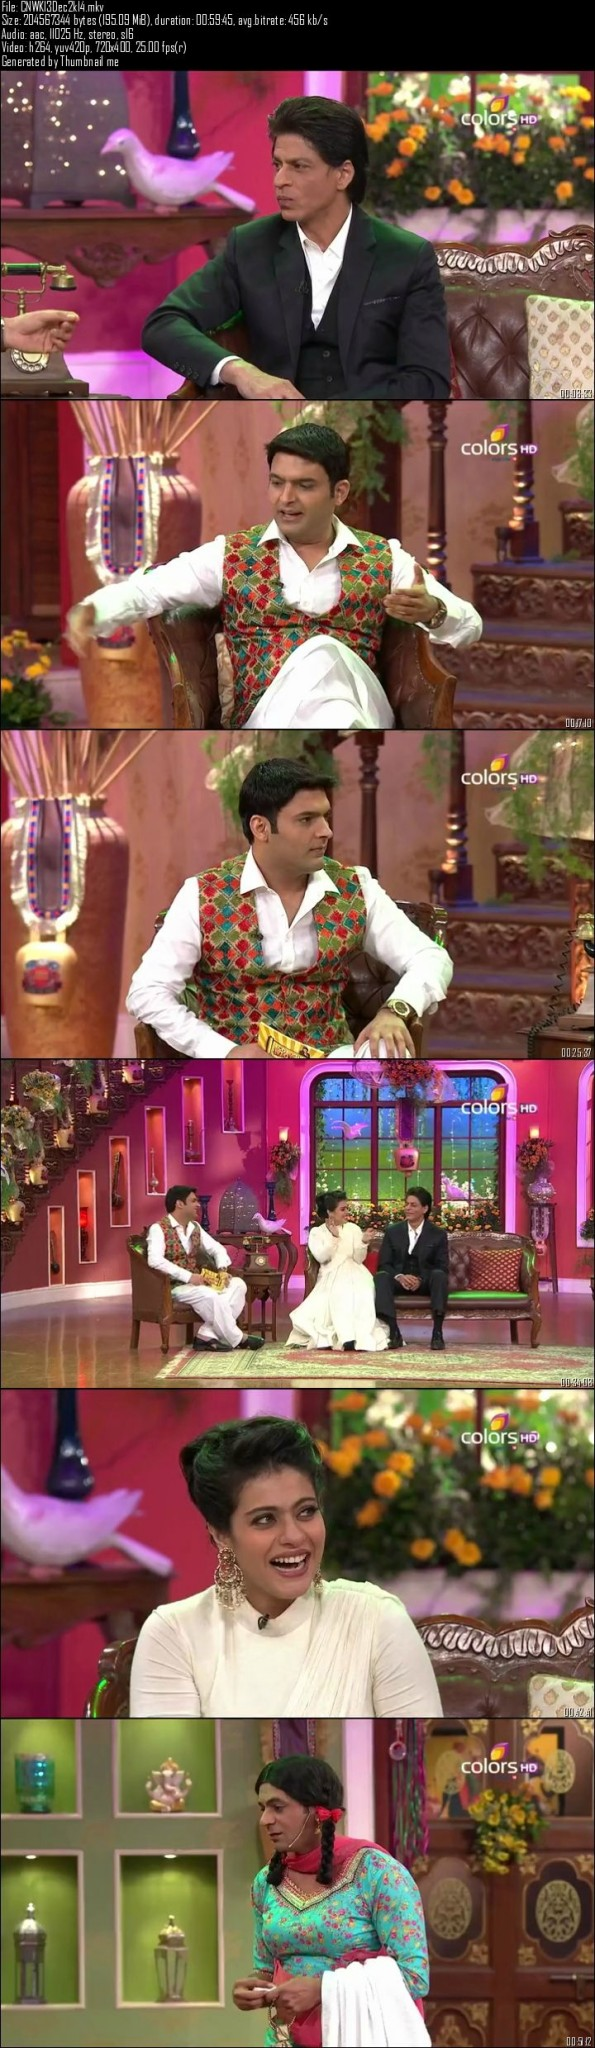 Comedy Nights With Kapil 13th December (2014)